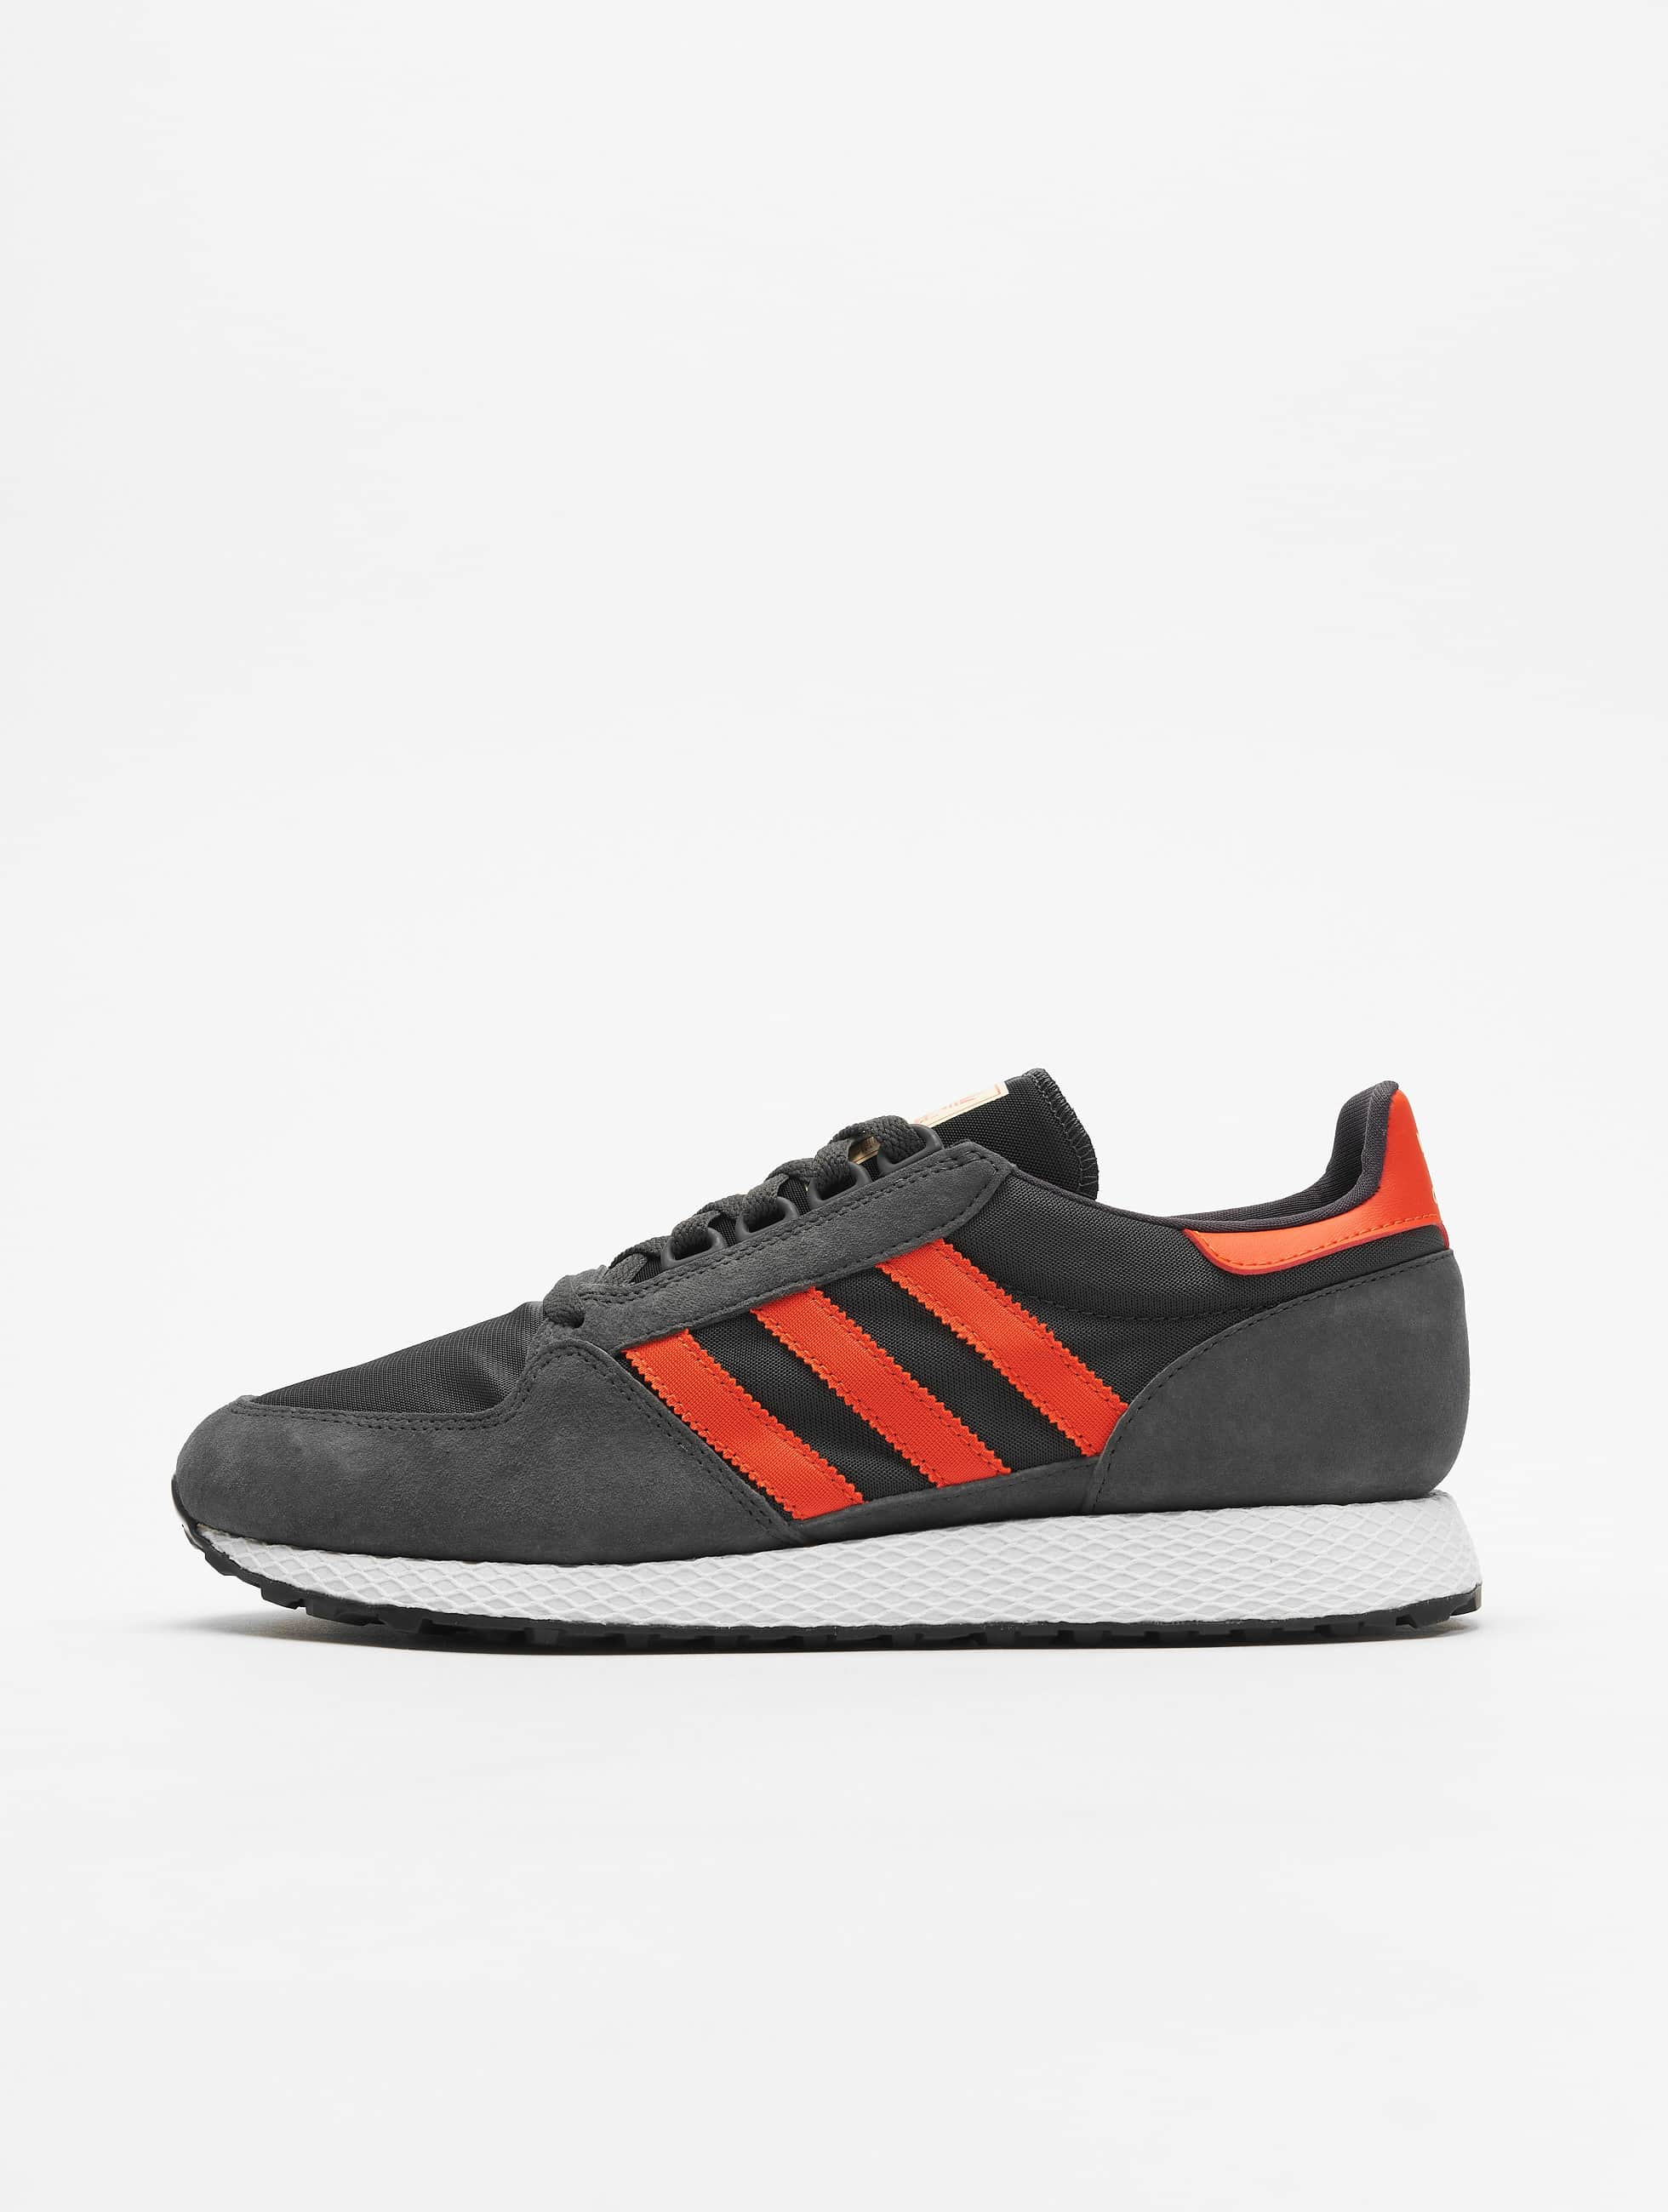 adidas jacka svart orange, adidas Originals X_PLR Sneakers